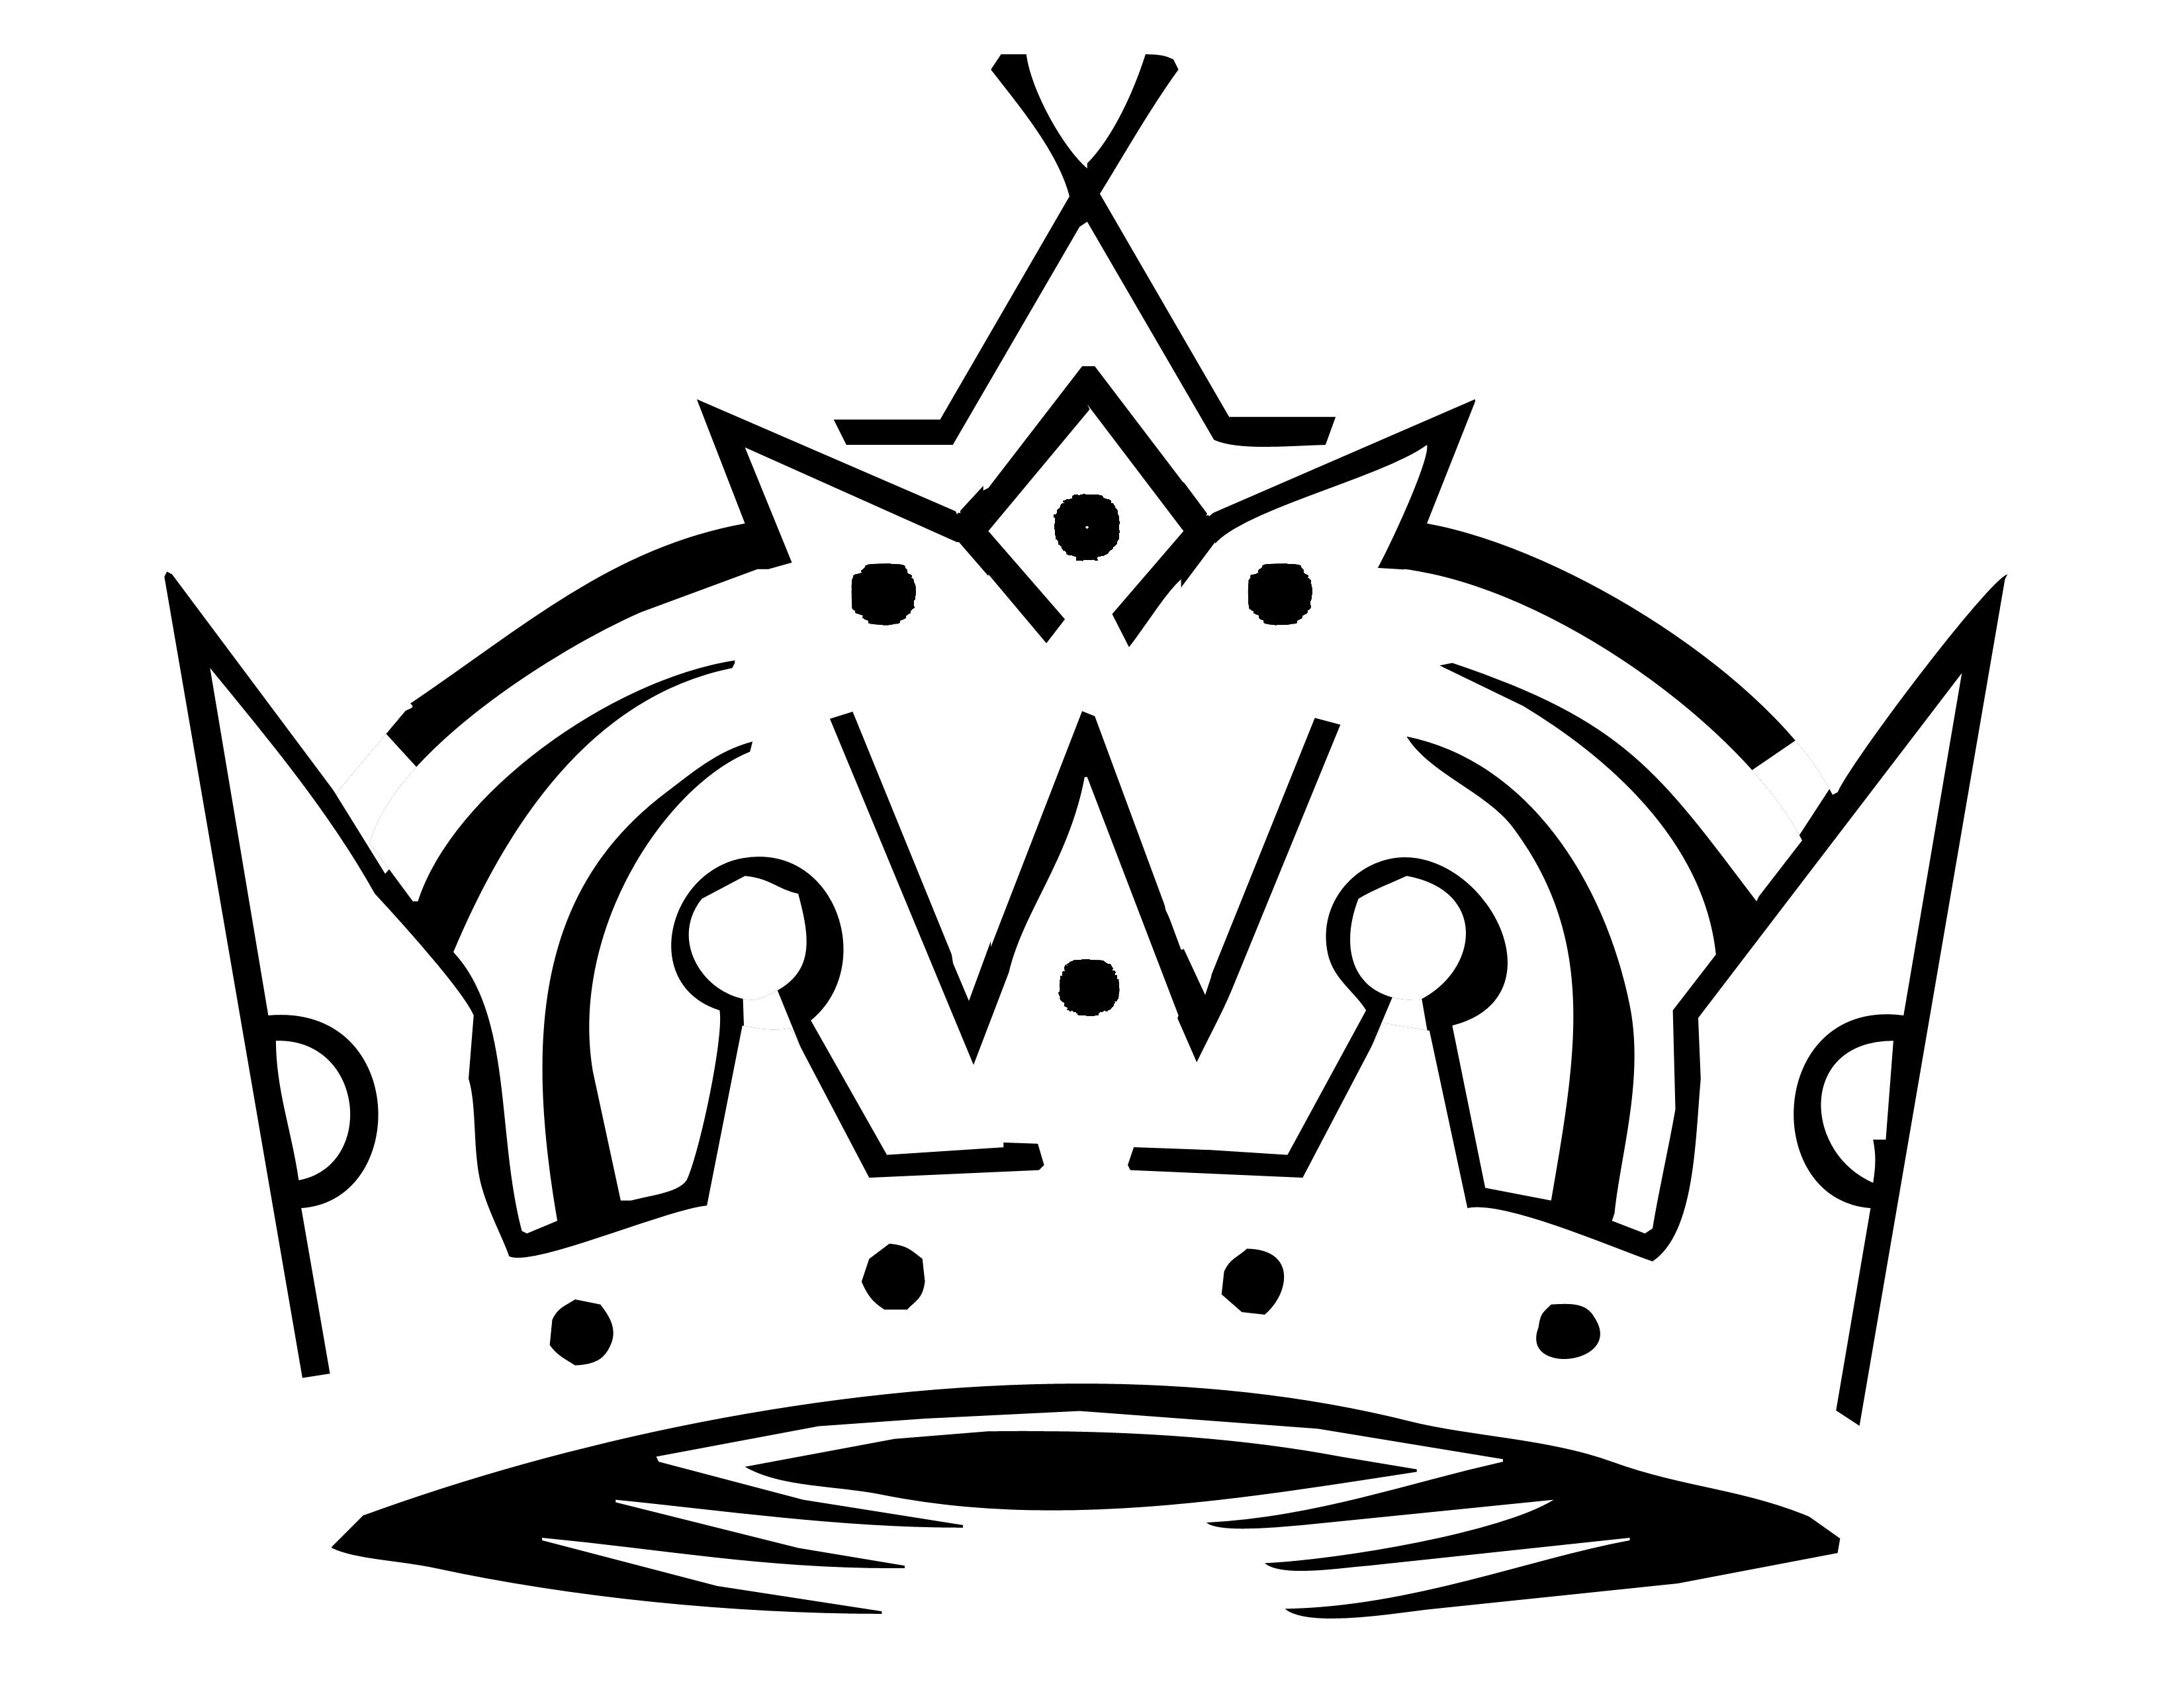 King crown clipart black and white 3d banner royalty free stock Free Simple King Crown Drawing, Download Free Clip Art, Free Clip ... banner royalty free stock